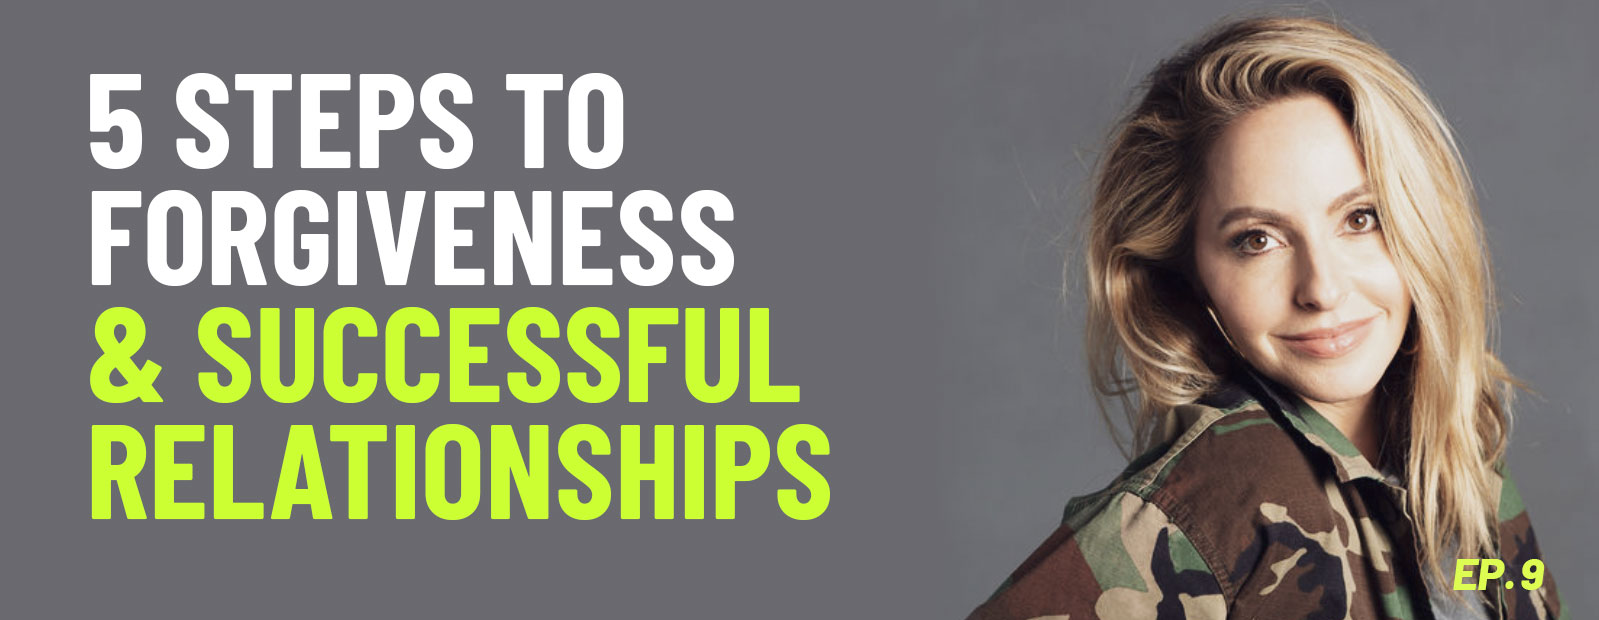 5 Steps to Forgiveness and Successful Relationships